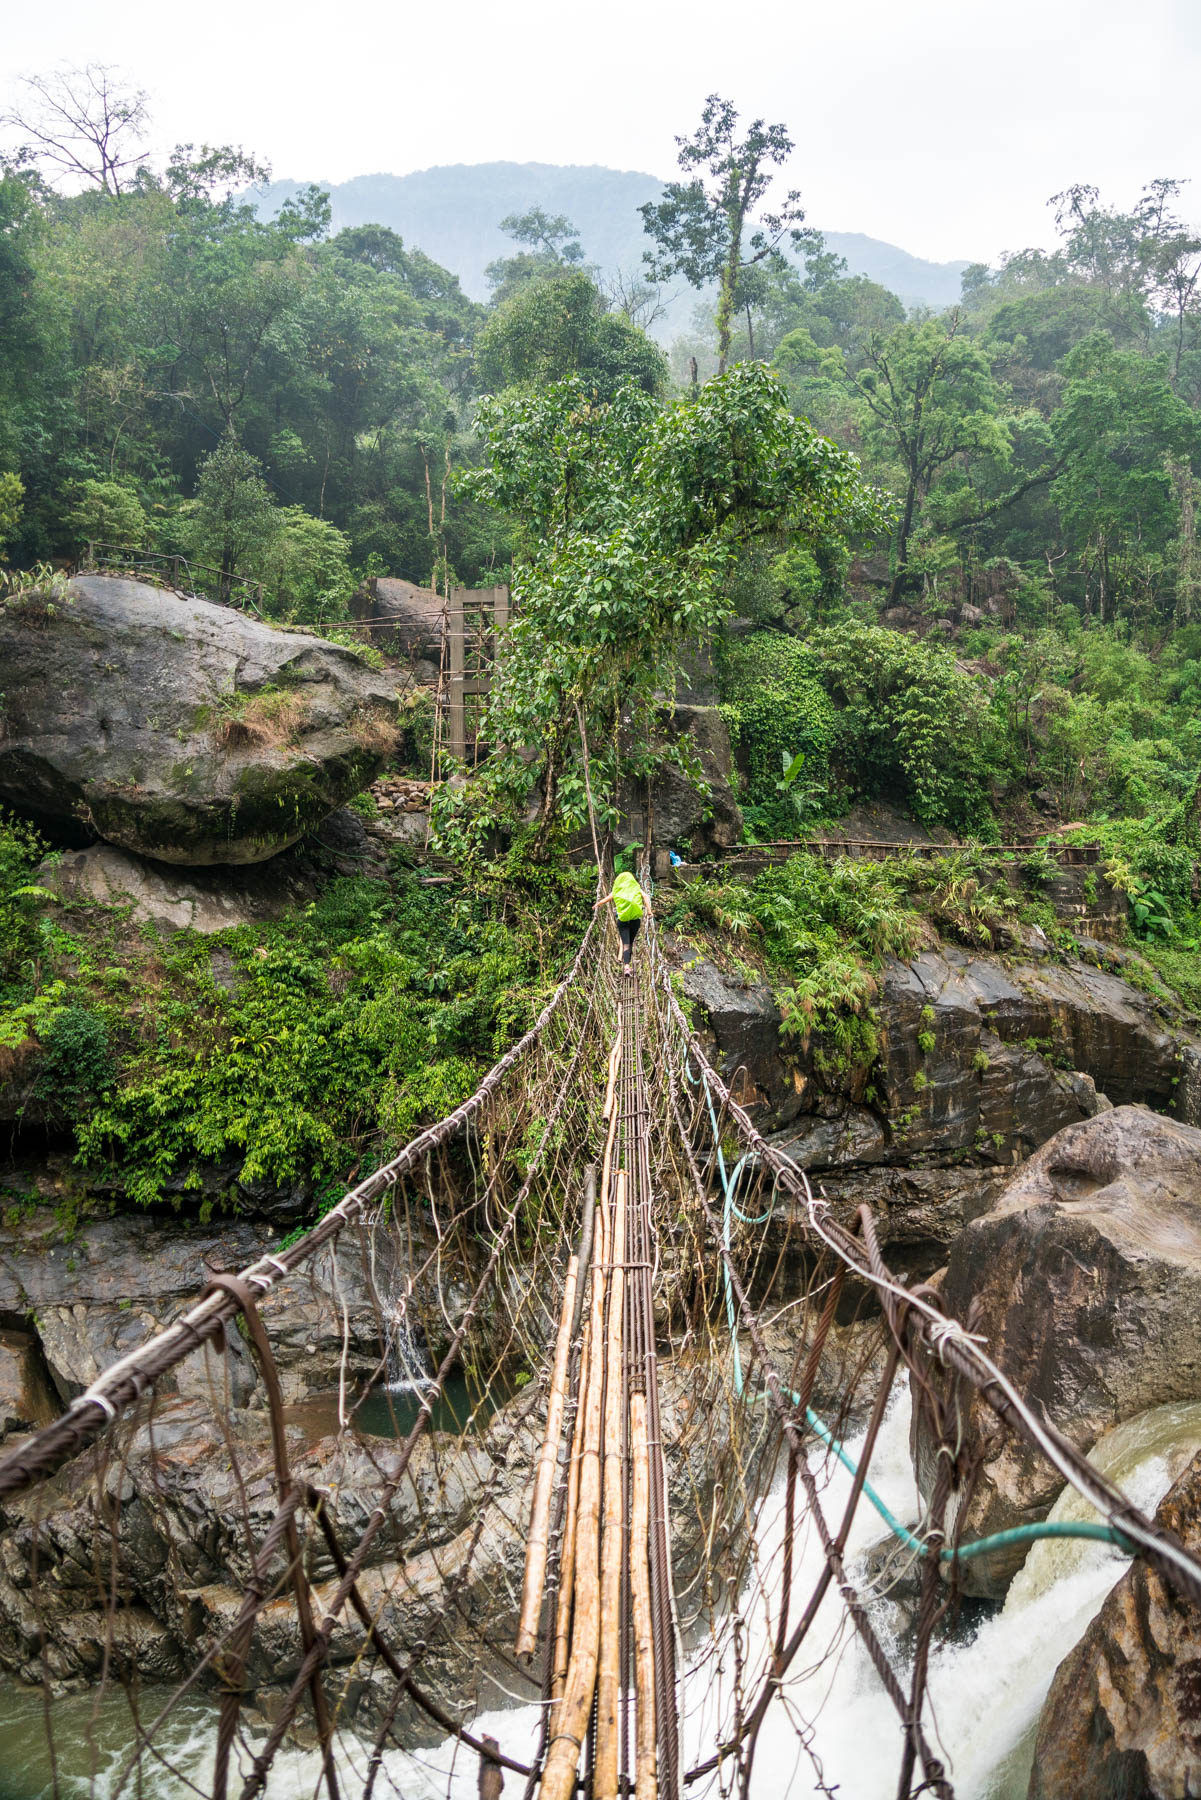 Photo essay of Nongriat and the living root bridges of Meghalaya, India - A wobbly suspension bridge over a river on the path to Nongriat, Meghalaya, India - Lost With Purpose